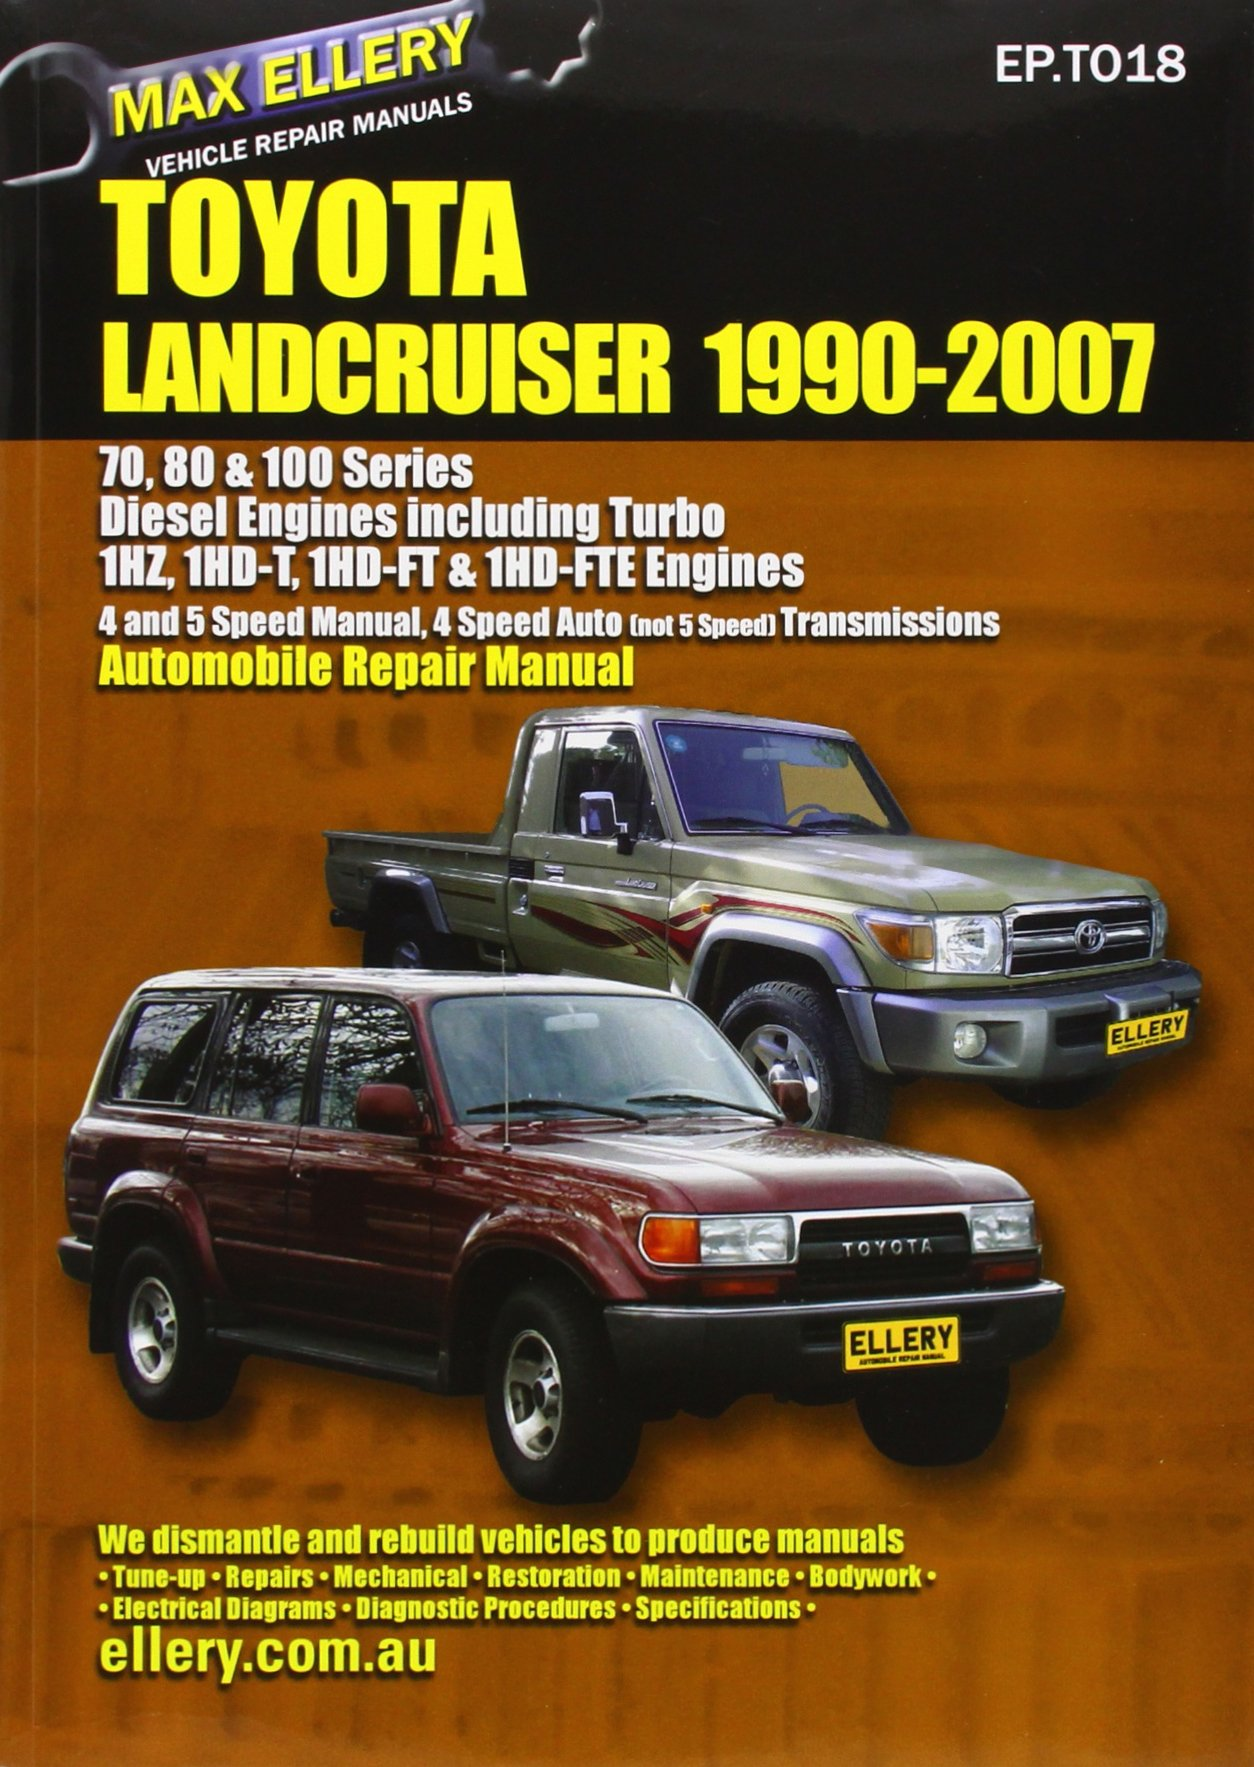 1998 Land Cruiser V8 Engine Diagram - Schema Wiring Diagram Haynes Repair Manuals Wiring Diagrams on